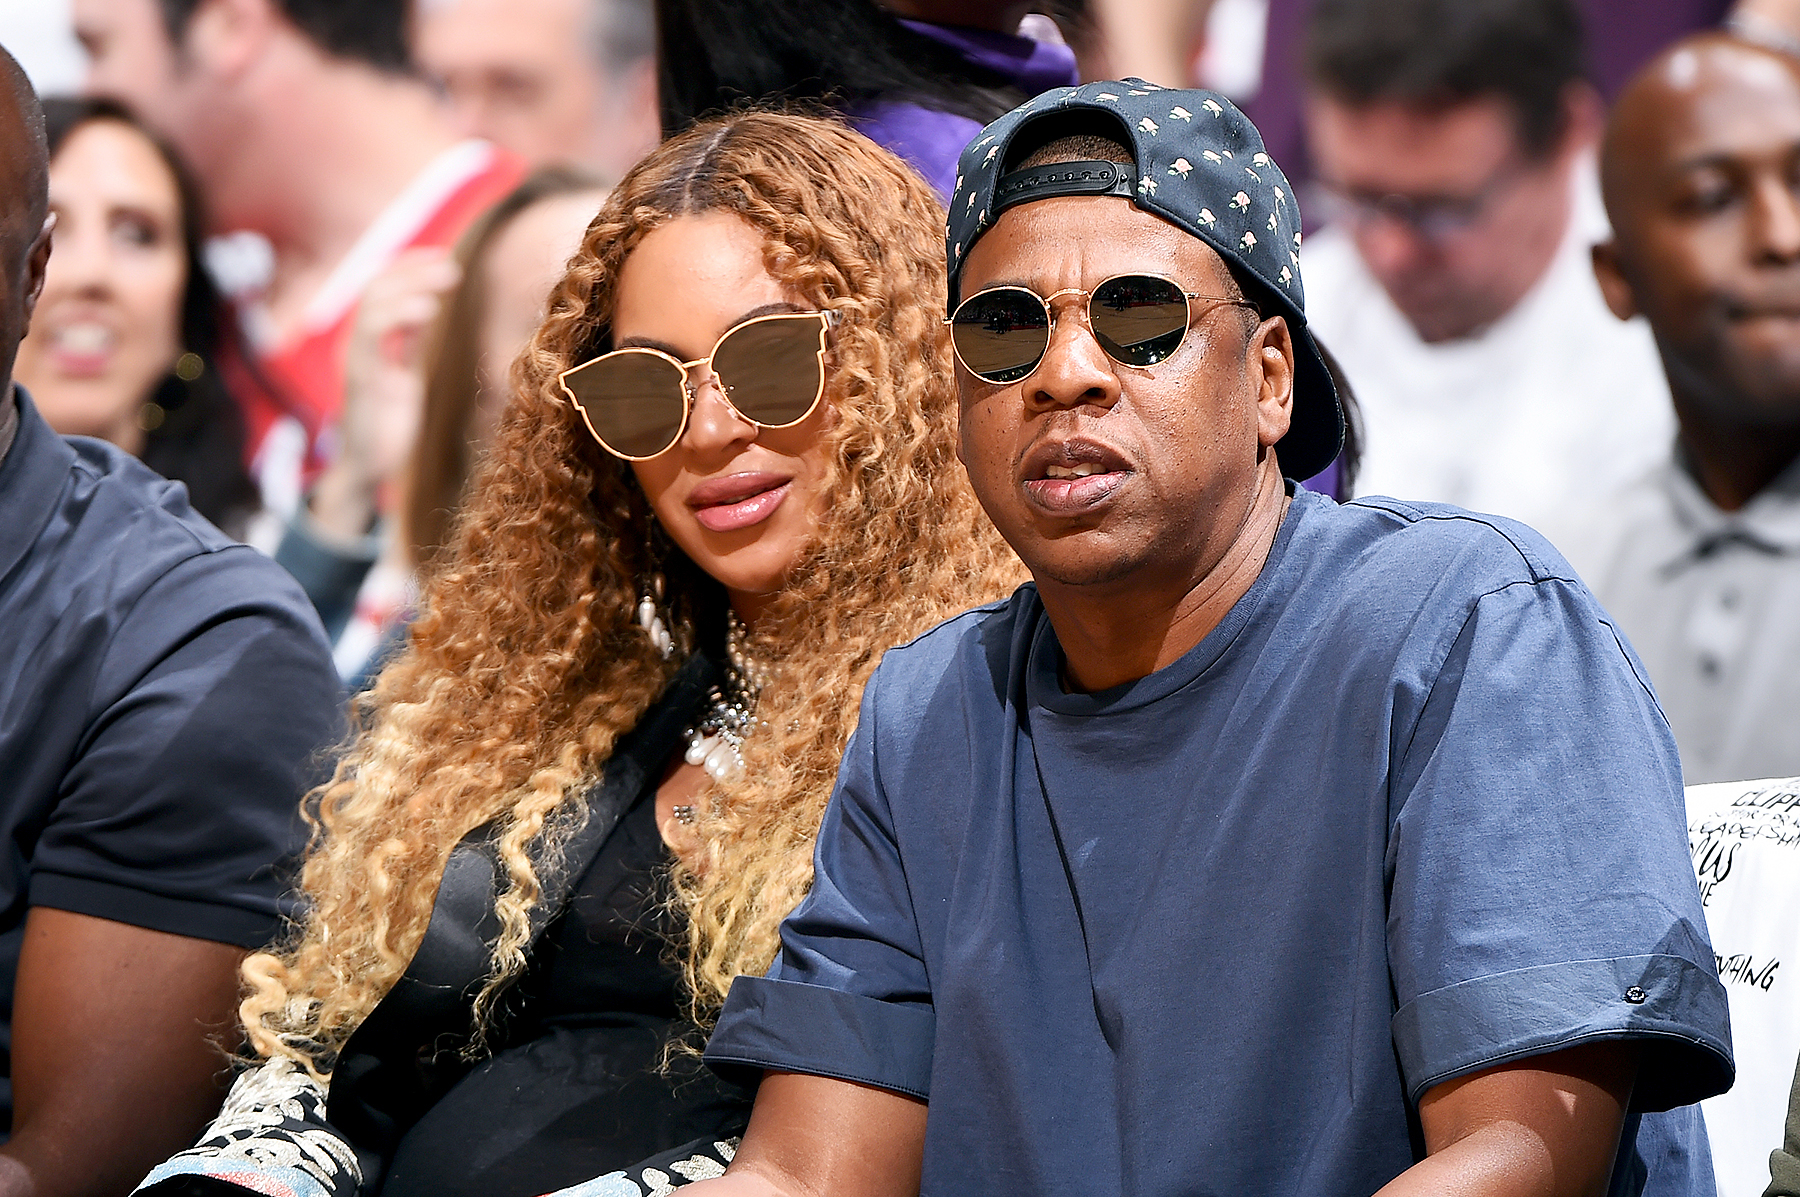 Jay Z Cradles Beyonce's Baby Bump at Basketball Game